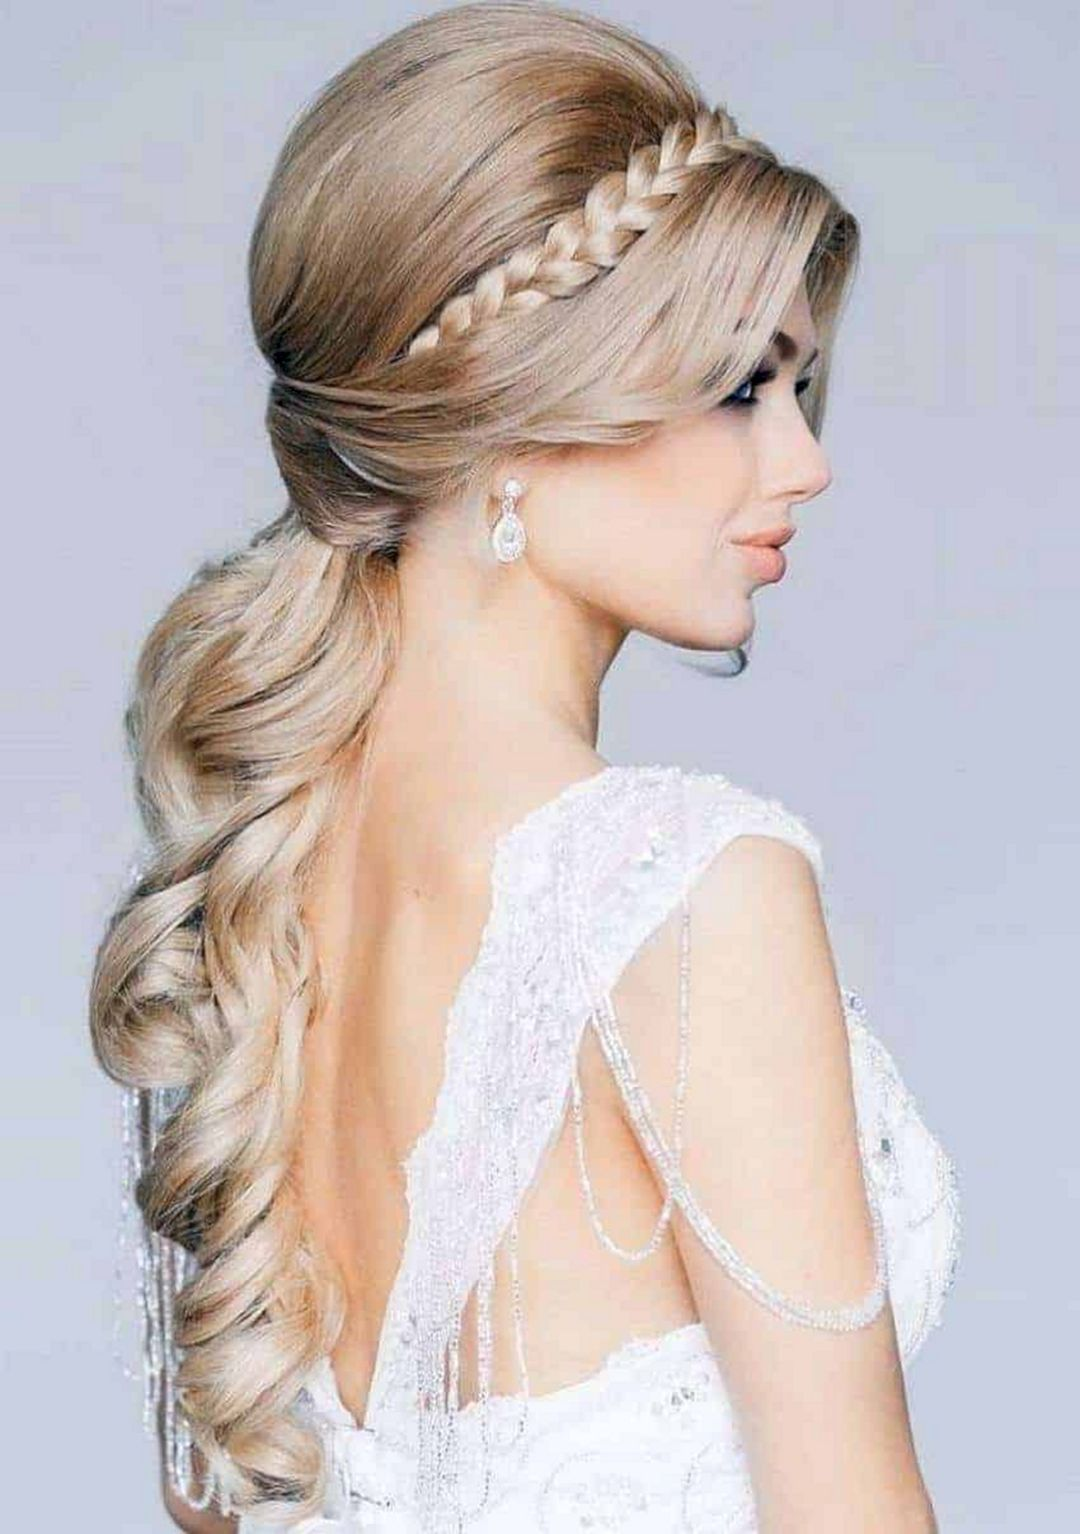 30 awesome wedding hairstyles for long hair ideas